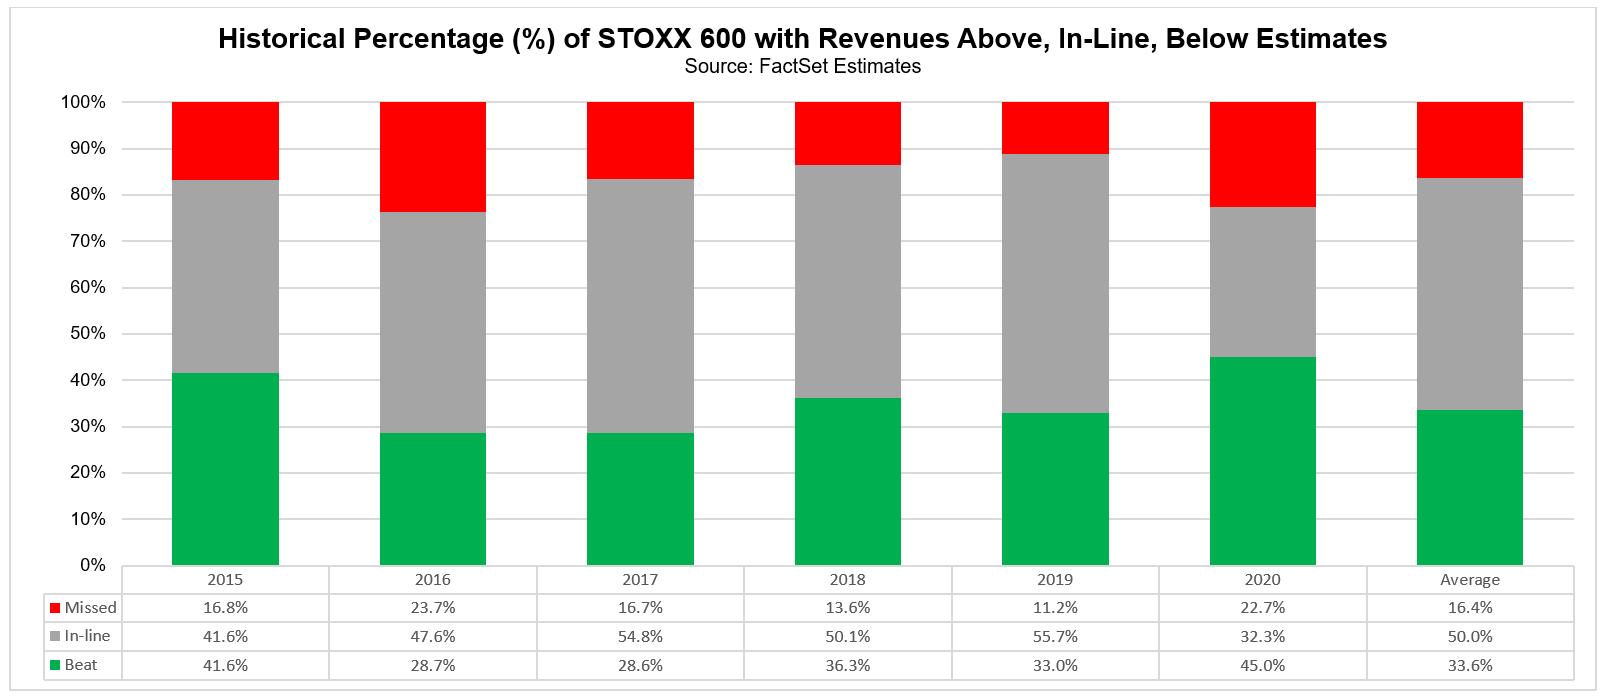 Historical percentage of STOXX 600 cos with revenues above inline below estimates